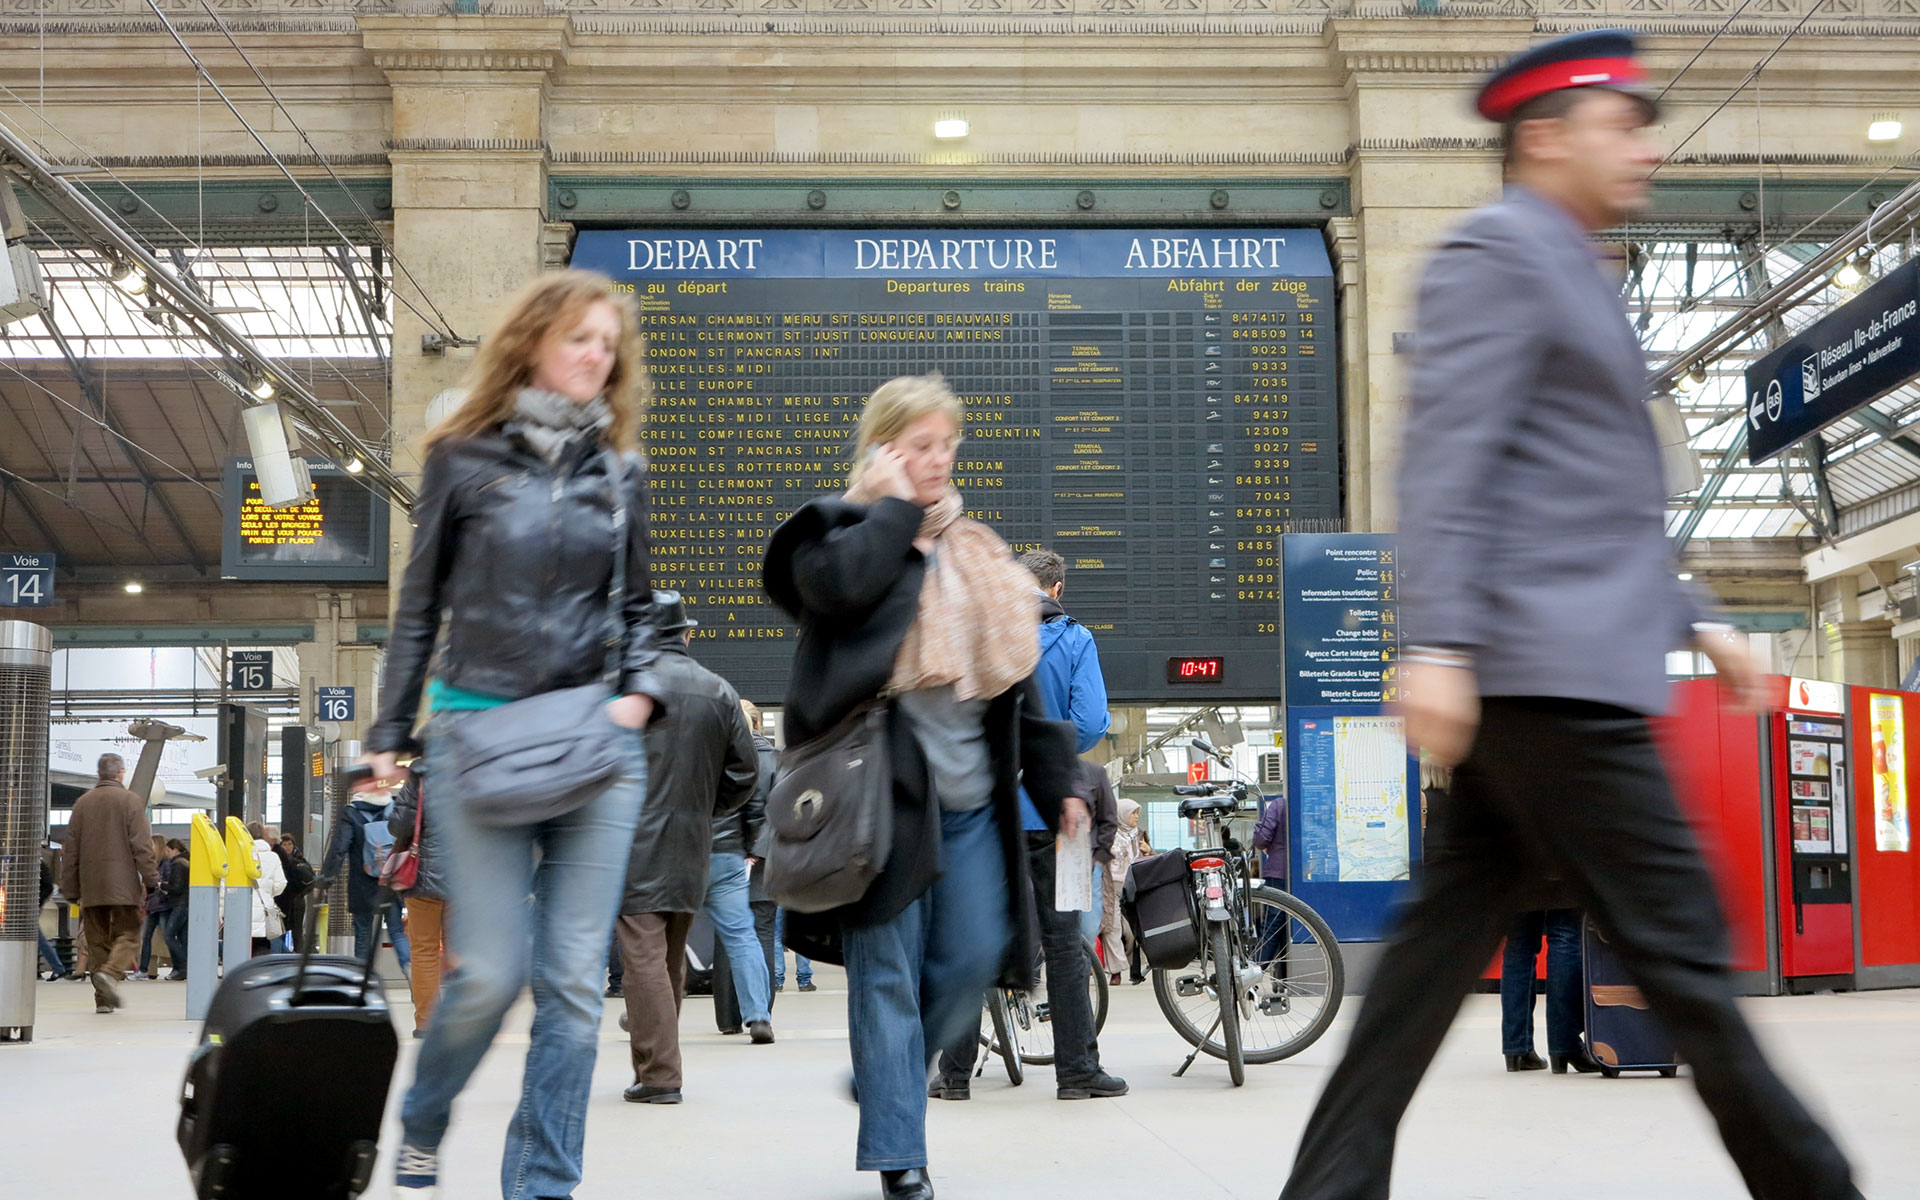 Paris Gare du Nord is the busiest railway station on the European mainland. It is the arrival point for Eurostar services from London (photo © Viorel Dudau / dreamstime.com).